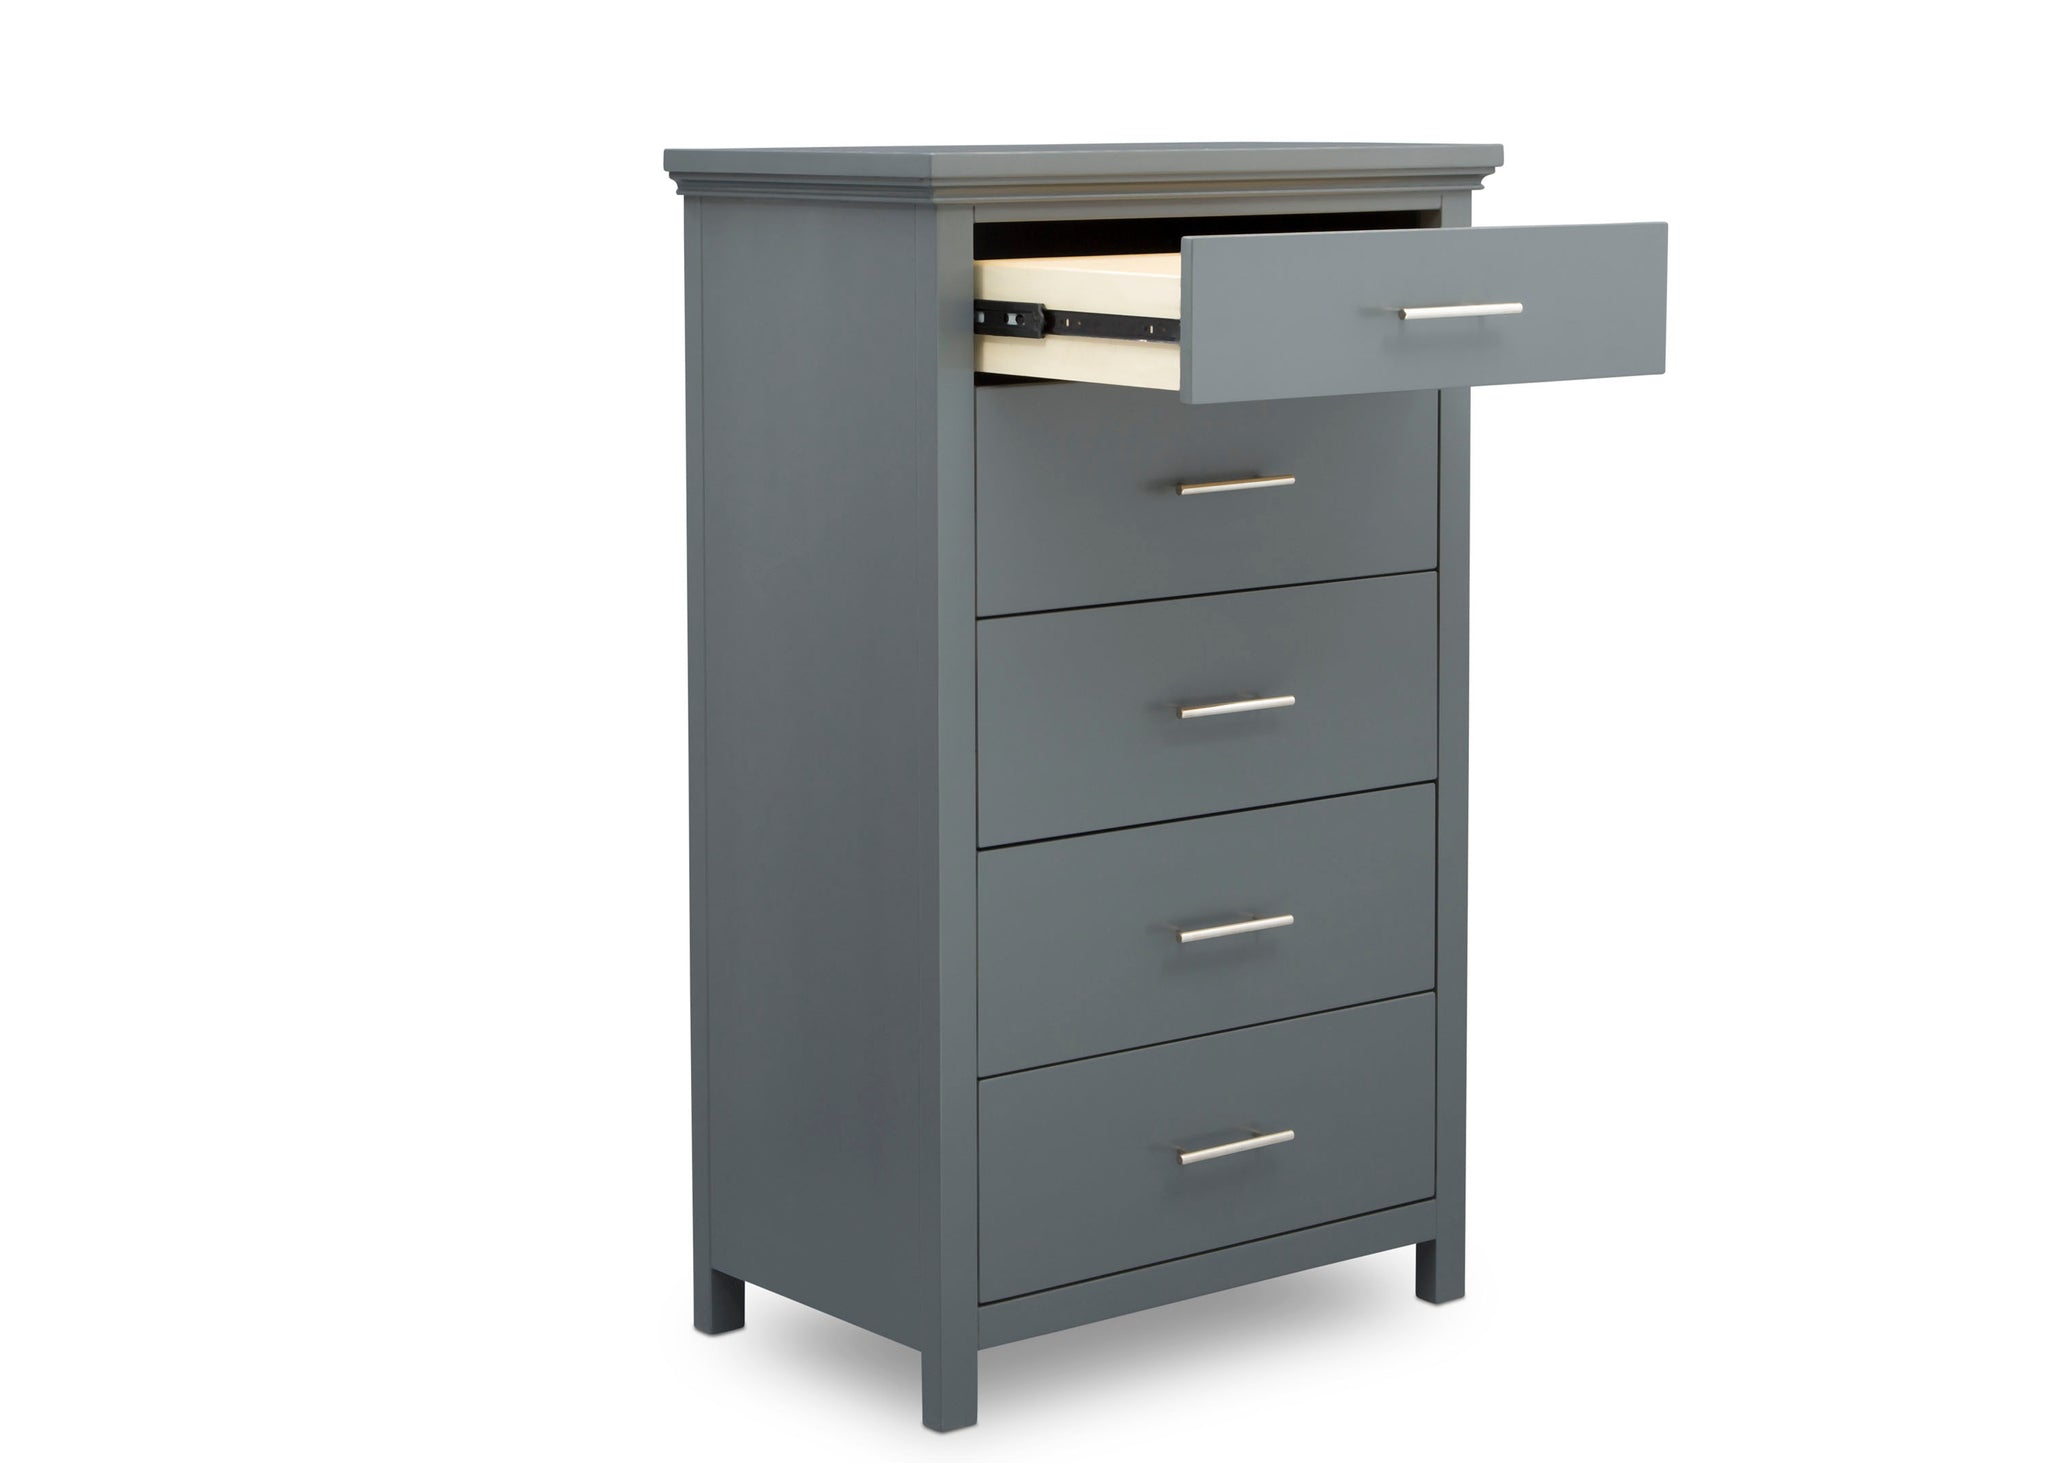 Simmons Kids Charcoal Grey (029) Avery 5 Drawer Chest, Right Silo Open Drawer View